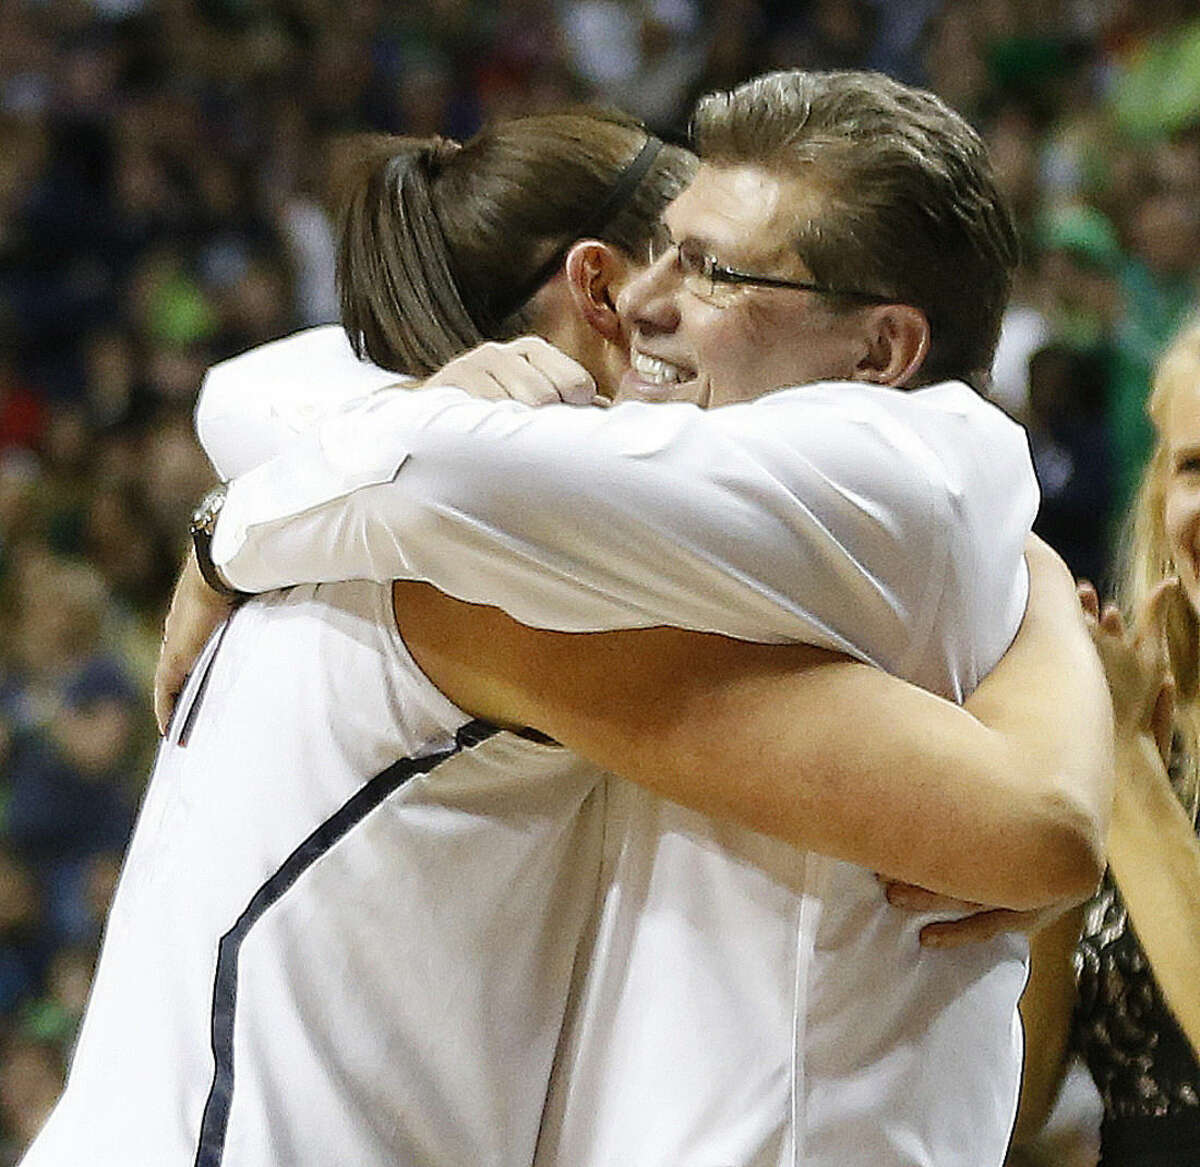 FILE - In this April 18, 2014, file photo, Connecticut center Stefanie Dolson (31) embraces Connecticut head coach Geno Auriemma during the second half of the championship game against Notre Dame in the Final Four of the NCAA women's college basketball tournament in Nashville, Tenn. Auriemma and the UConn Huskies have turned women's college basketball into their own showcase. Over the past two decades, the Hall of Fame coach and his players have been the face of the sport, winning nine championships and poised to make a run at a 10th title. (AP Photo/John Bazemore, File)